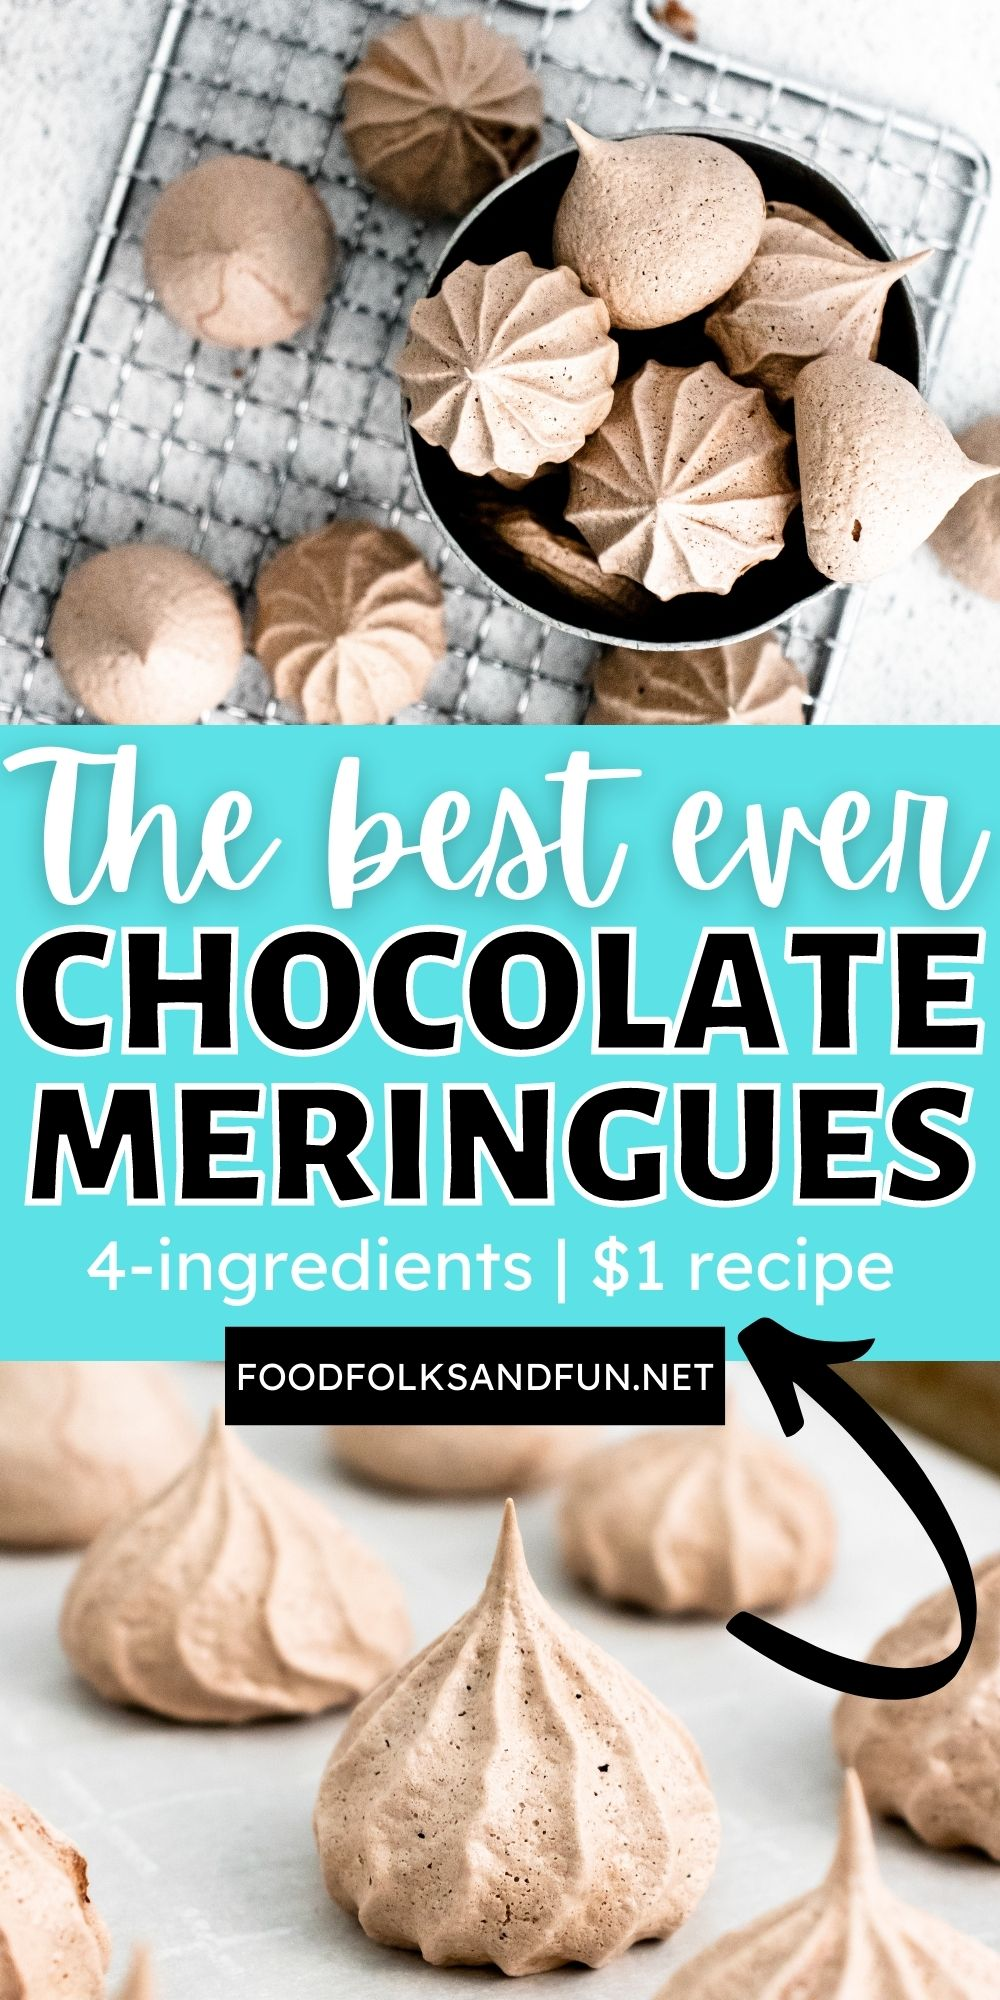 These Chocolate Meringue Cookies are crispy on the outside and chewy on the inside. These airy meringue kisses blissfully melt in your mouth. via @foodfolksandfun